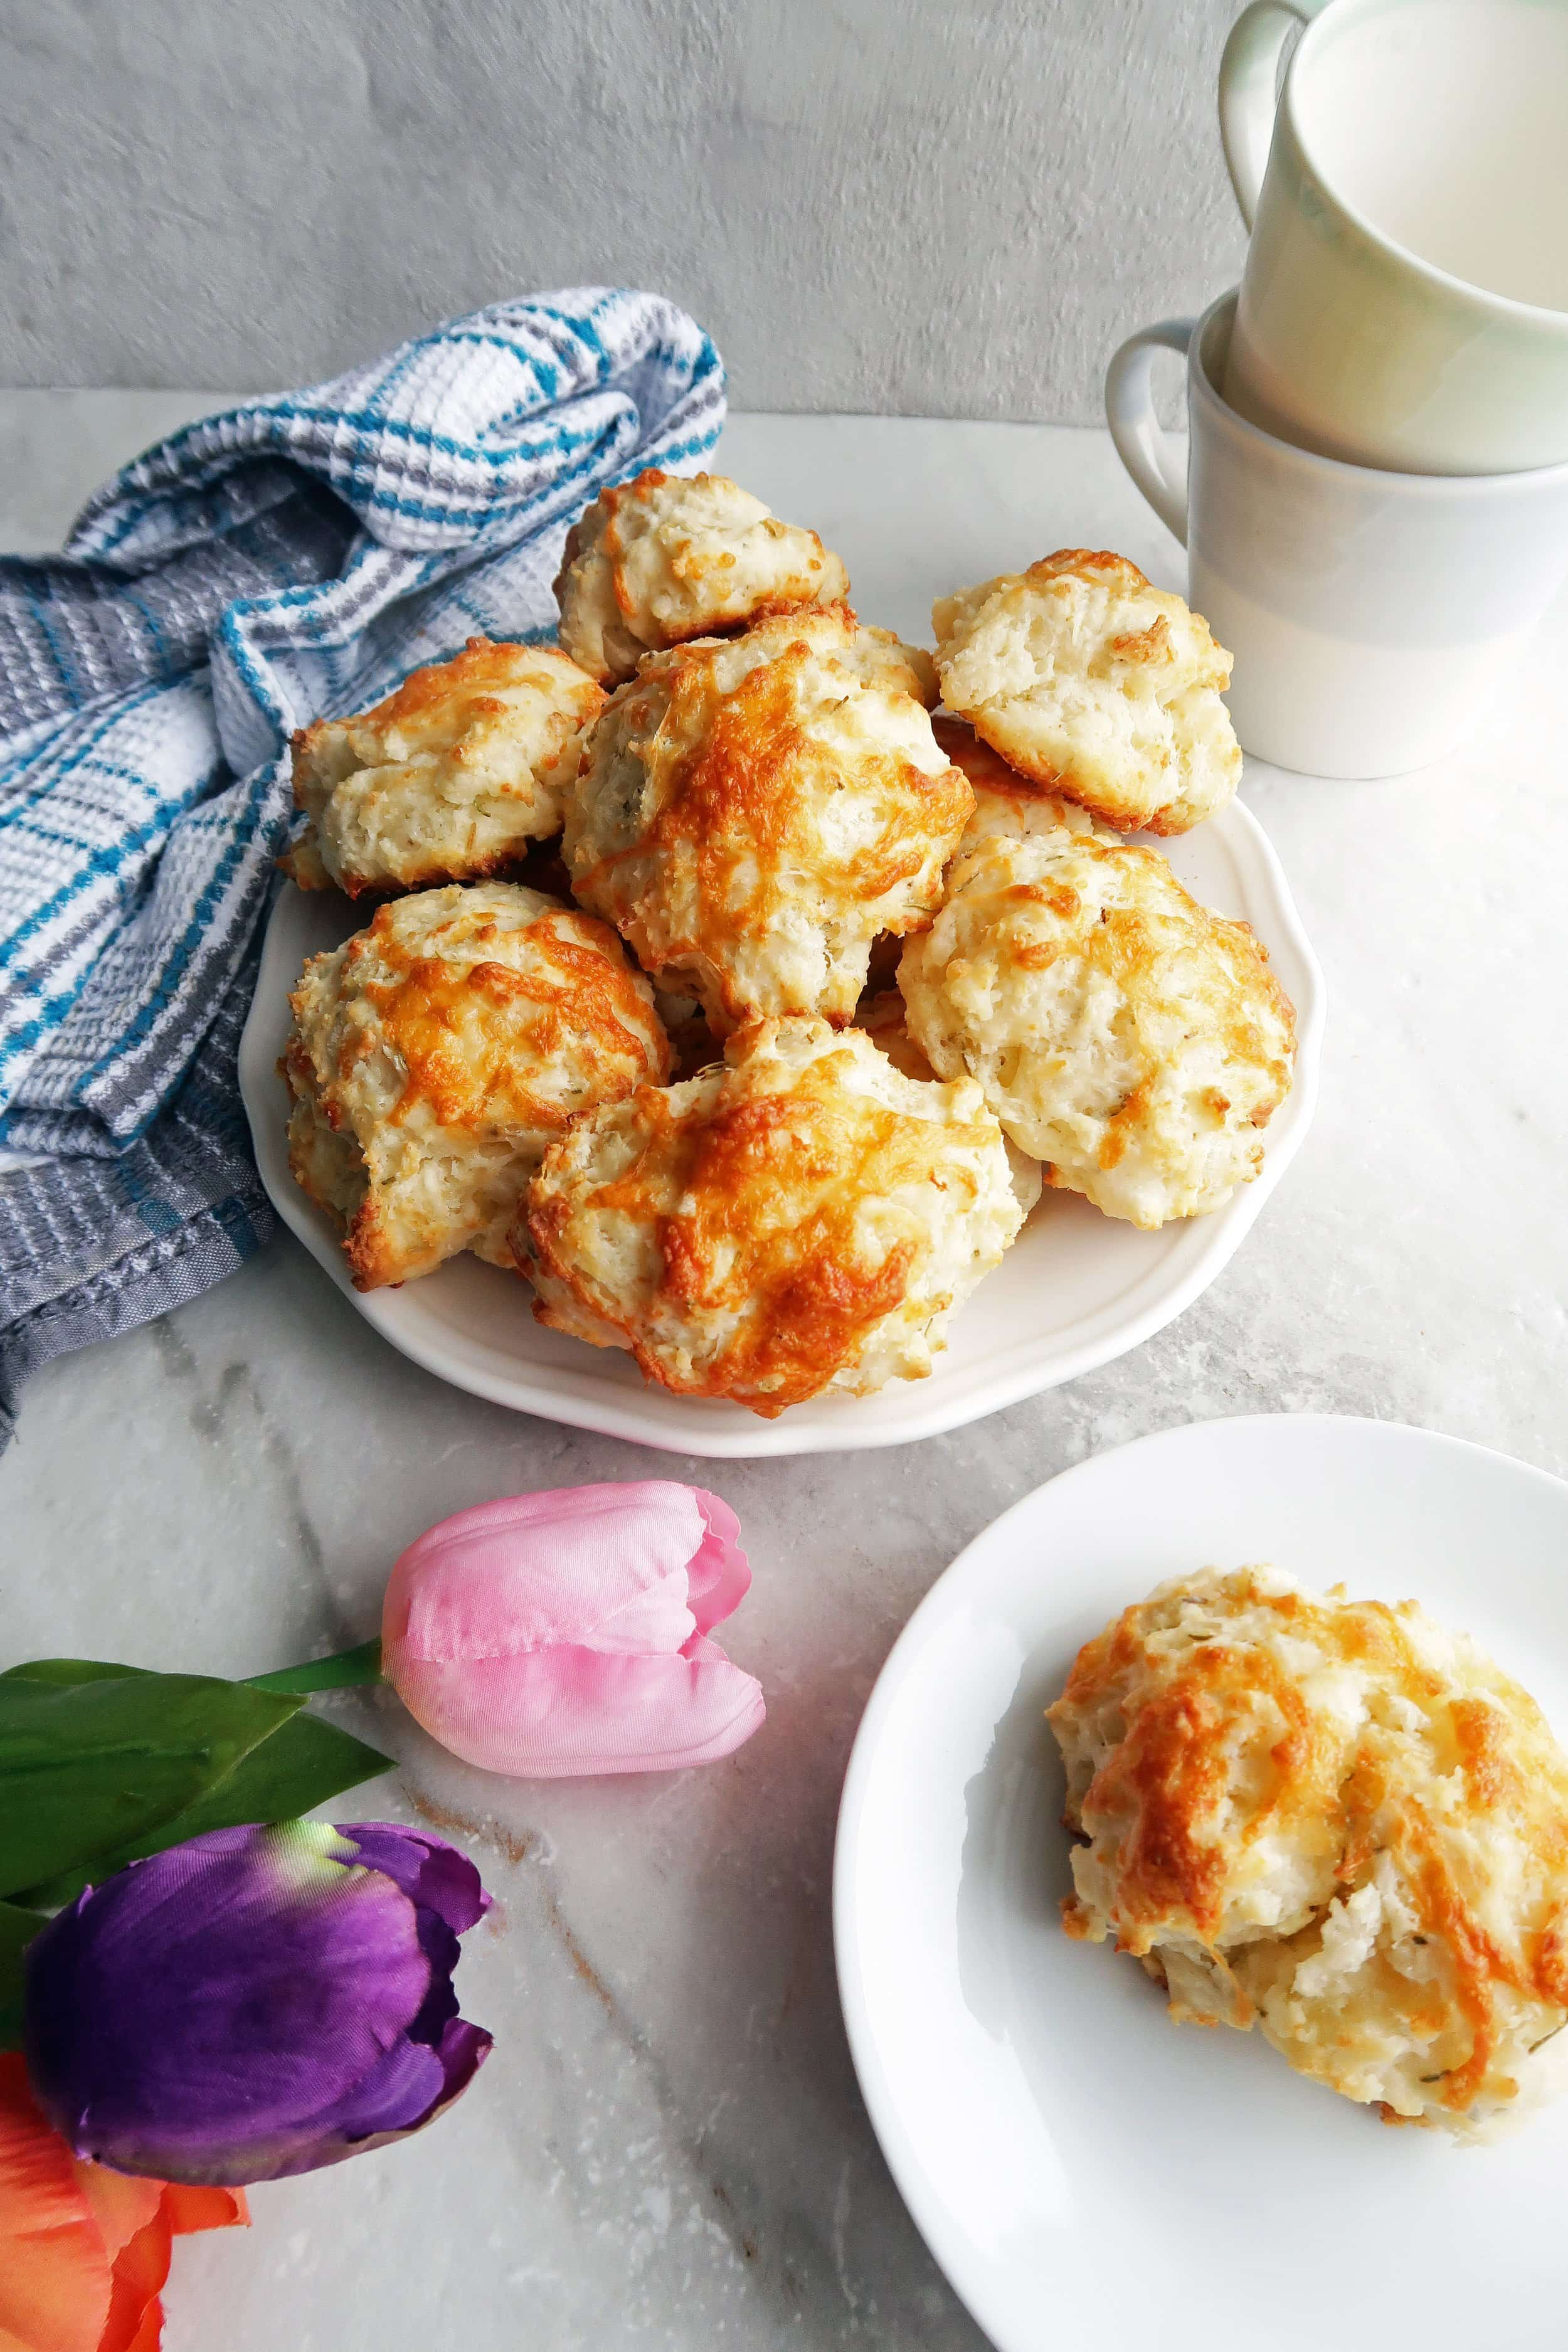 Quick Rosemary Cheddar Drop Biscuits piled on a white plate along with a single biscuit on a plate,tulips, a kitchen towel, and cups.